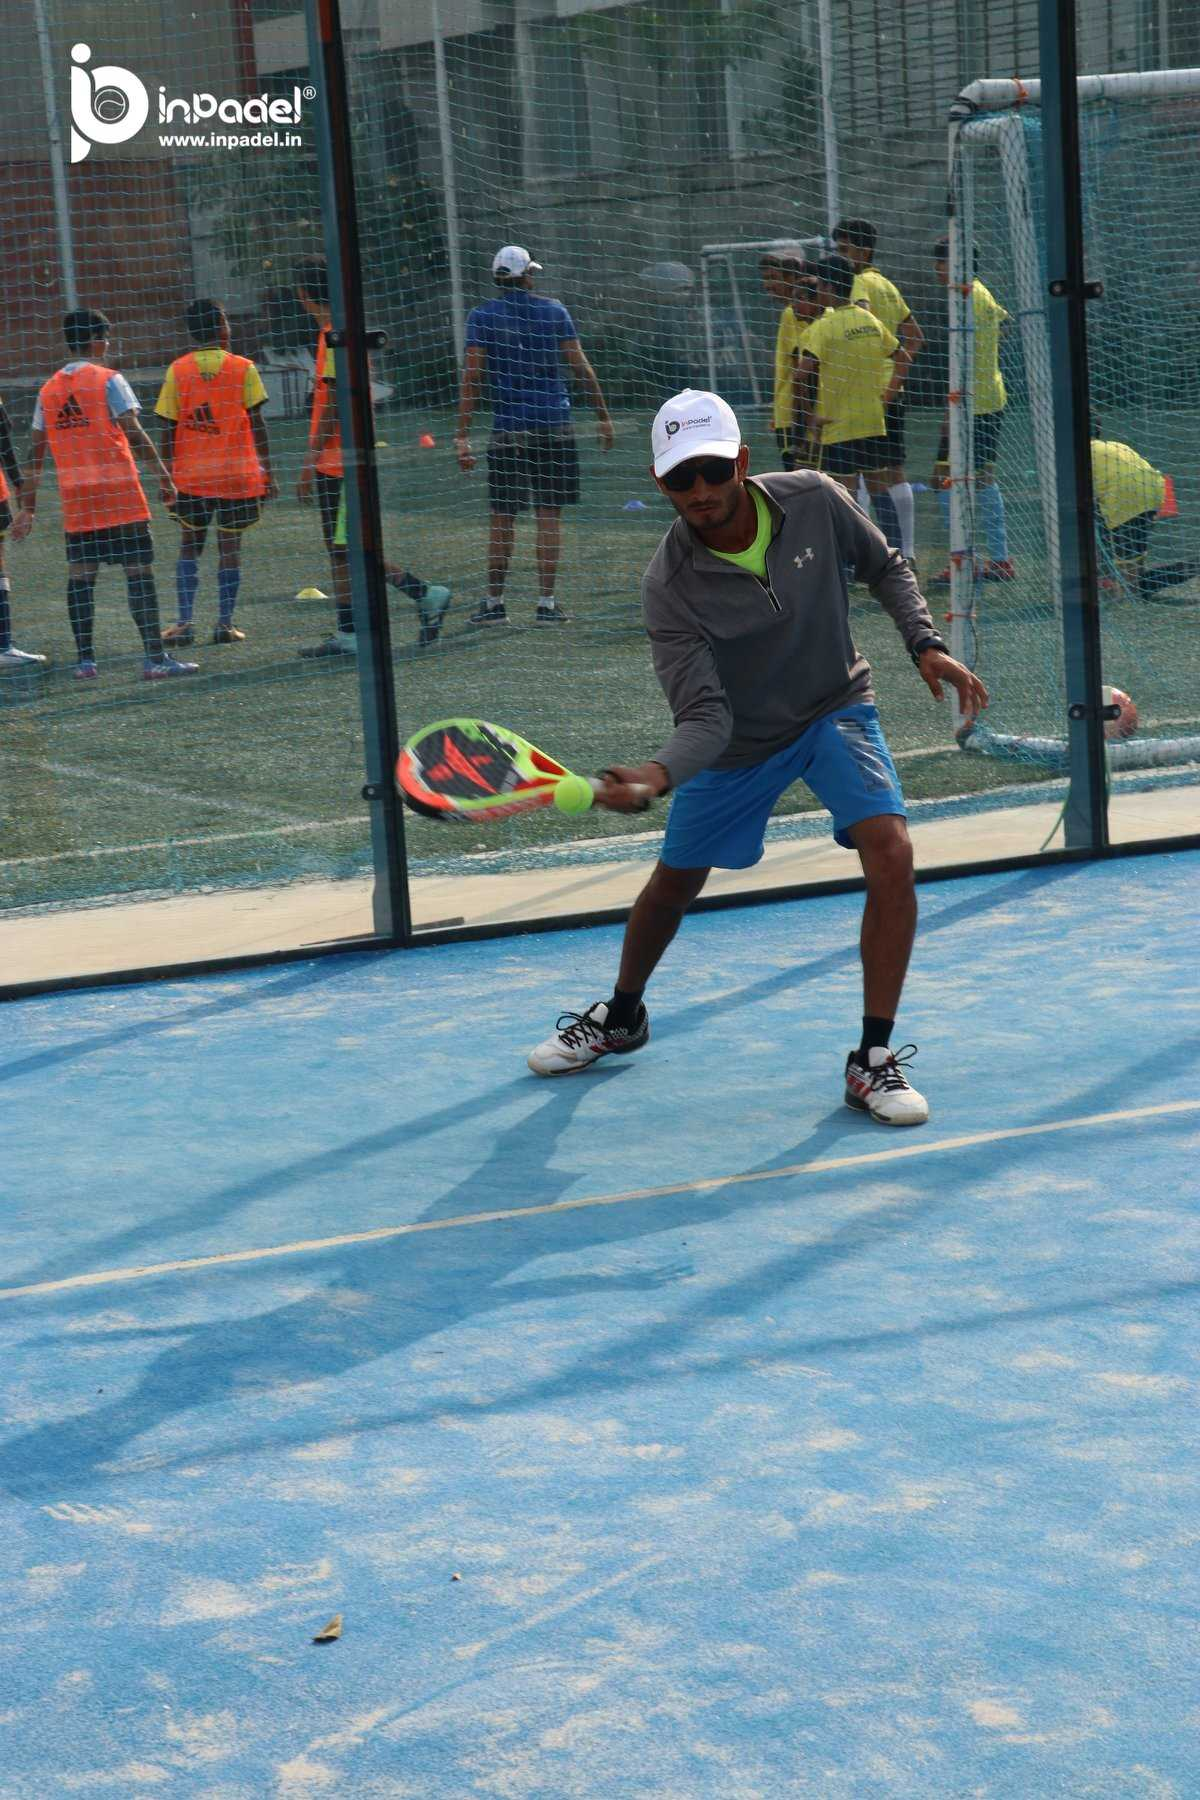 InPadel 1Yr Celebration of Padel in INDIA - Padel - Padel India (61)